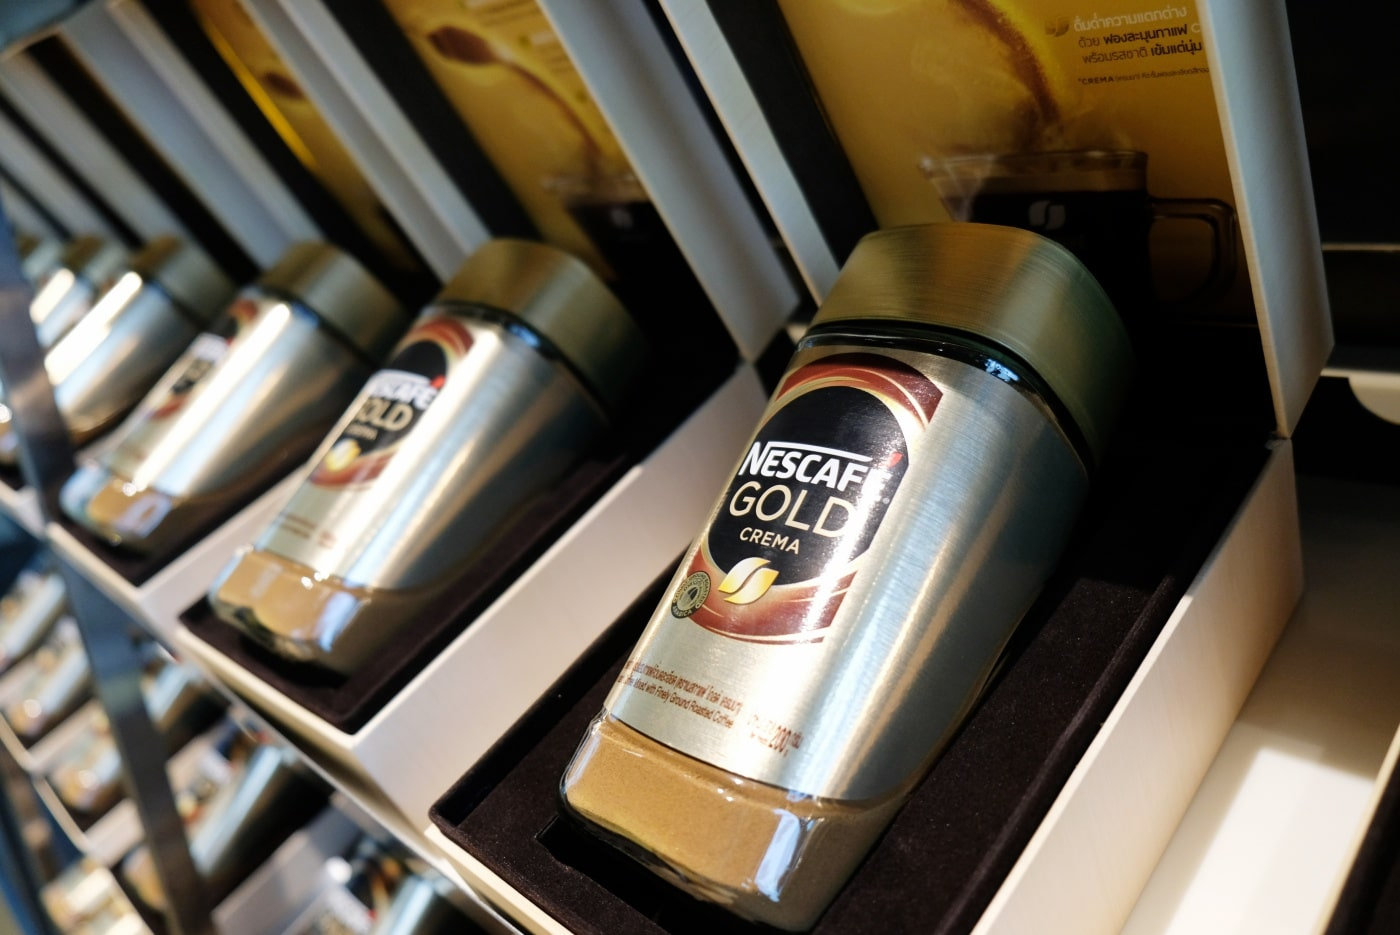 5-things-about-nest-coffee-gold-crema-20